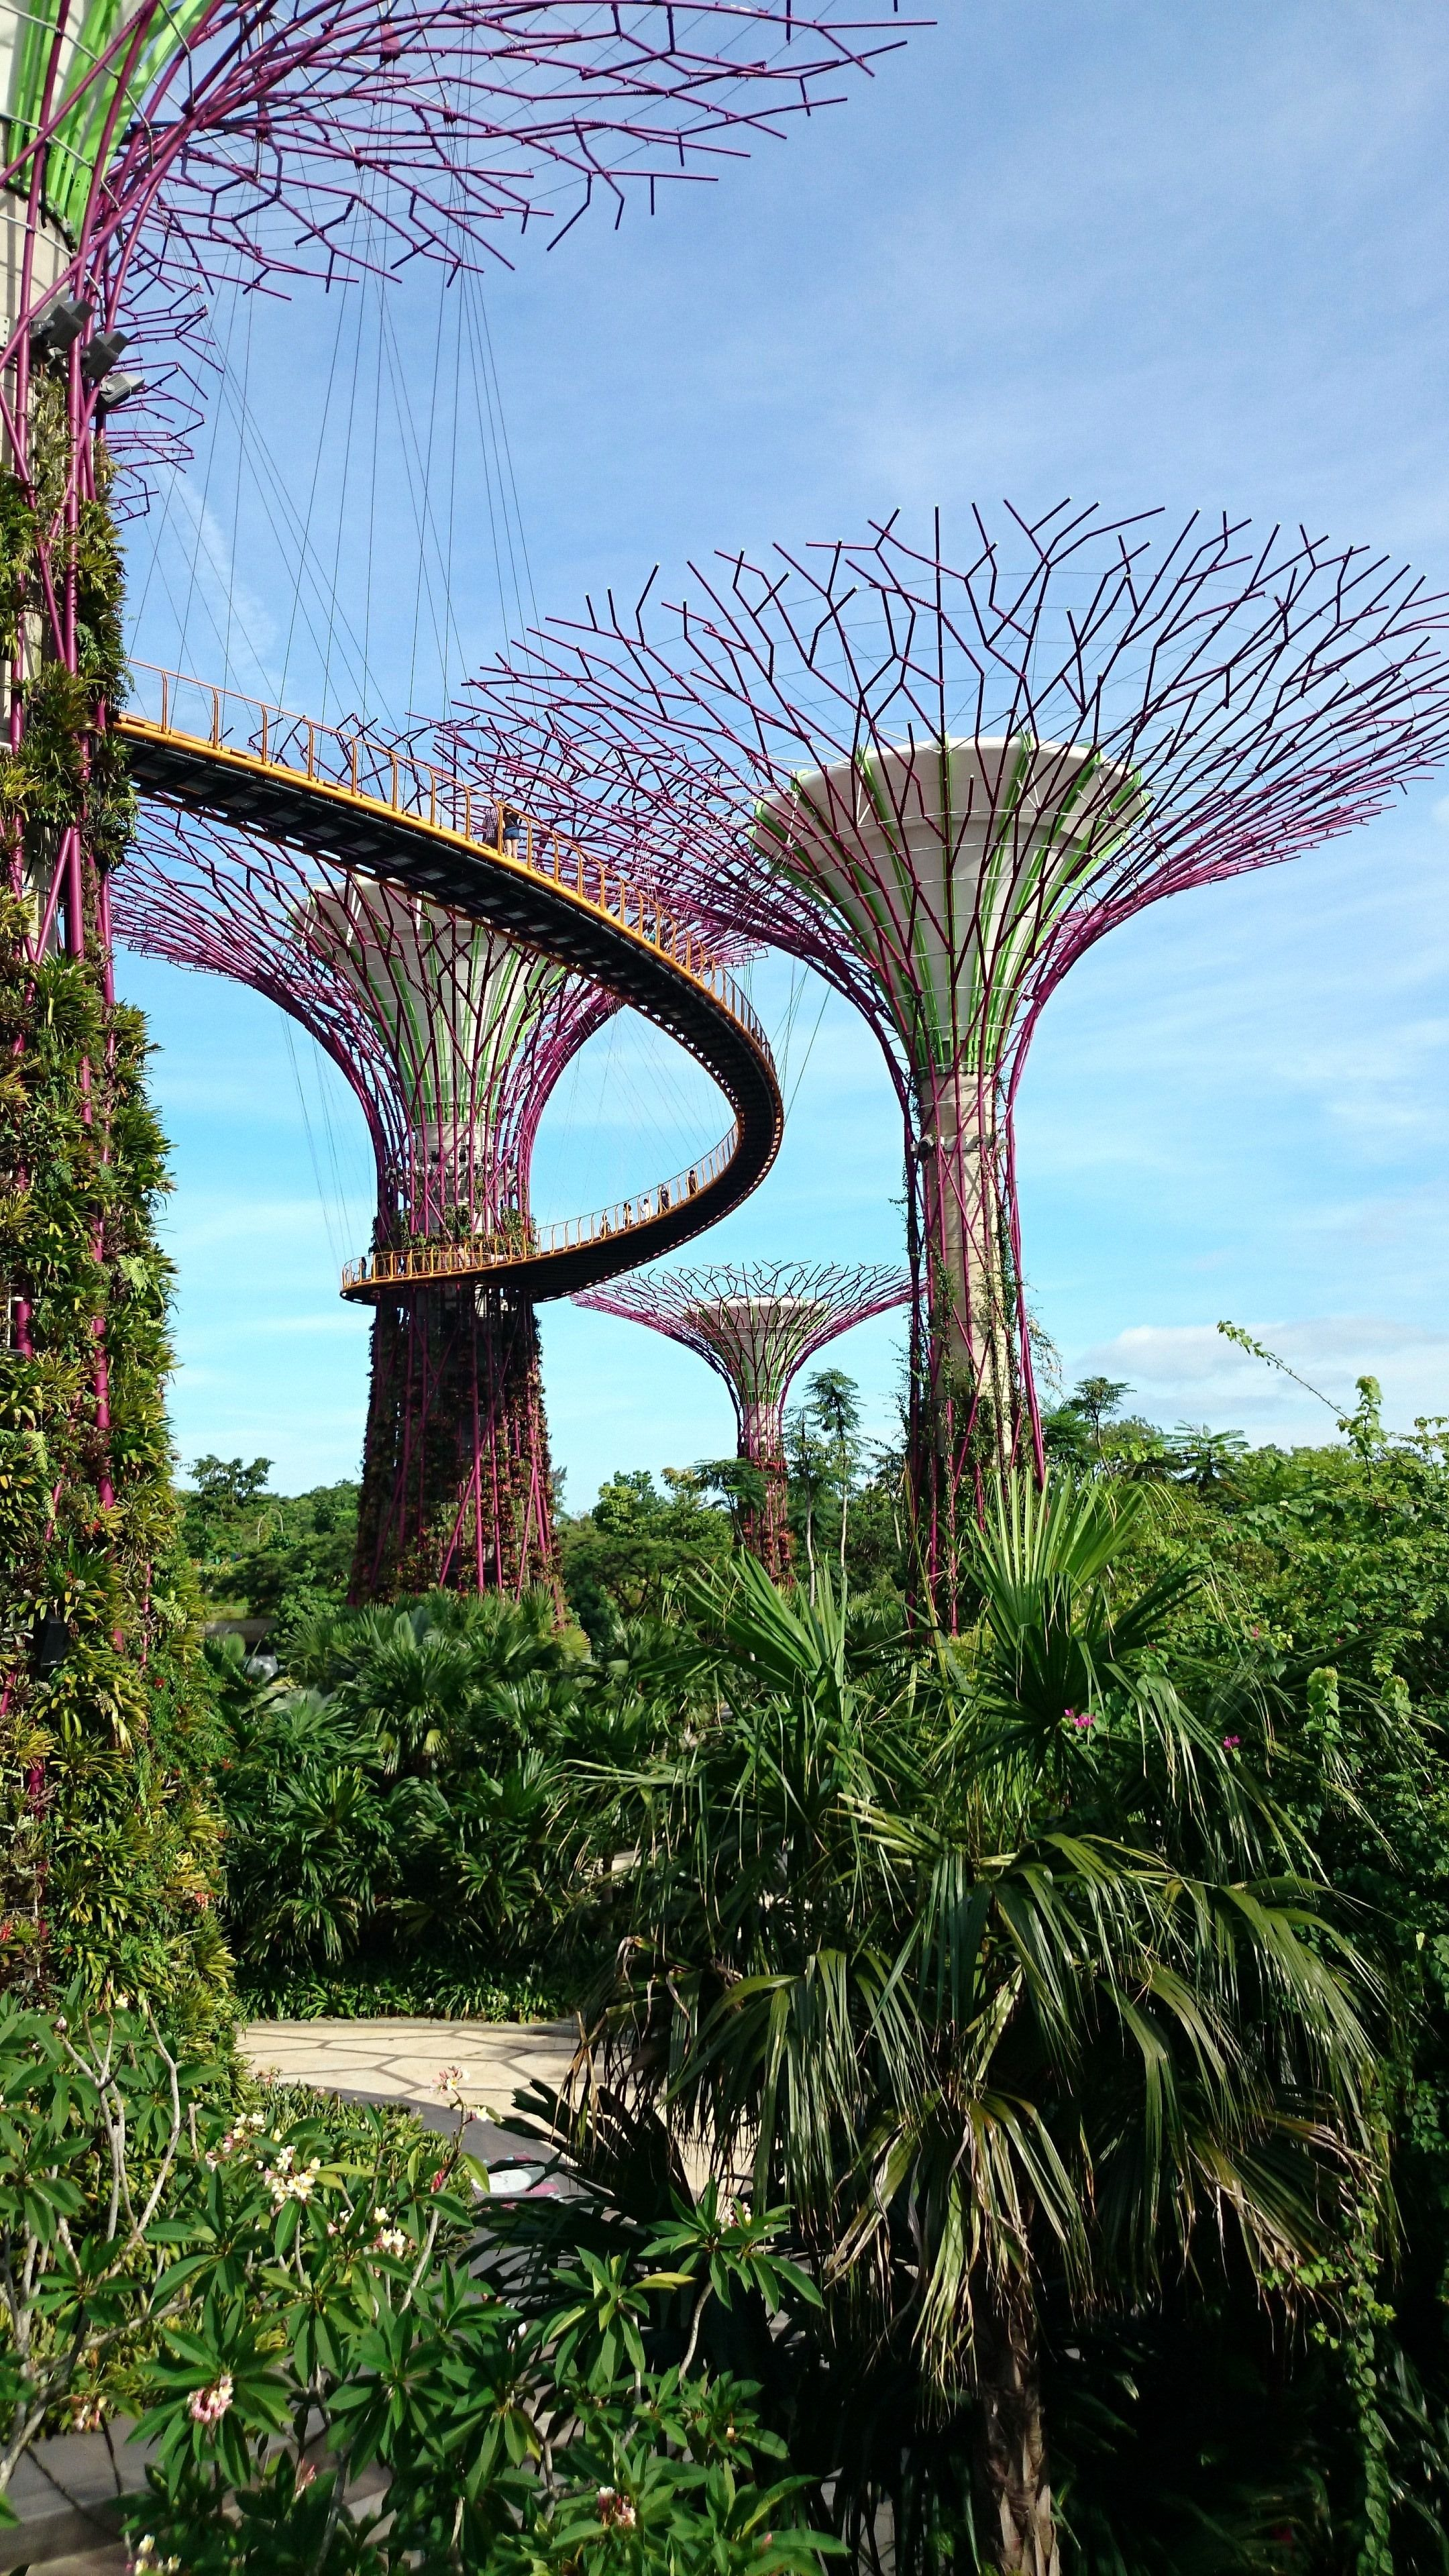 b38bf89fc3a77291652200c08fb59332 - Gardens By The Bay Singapore Nearest Mrt Station